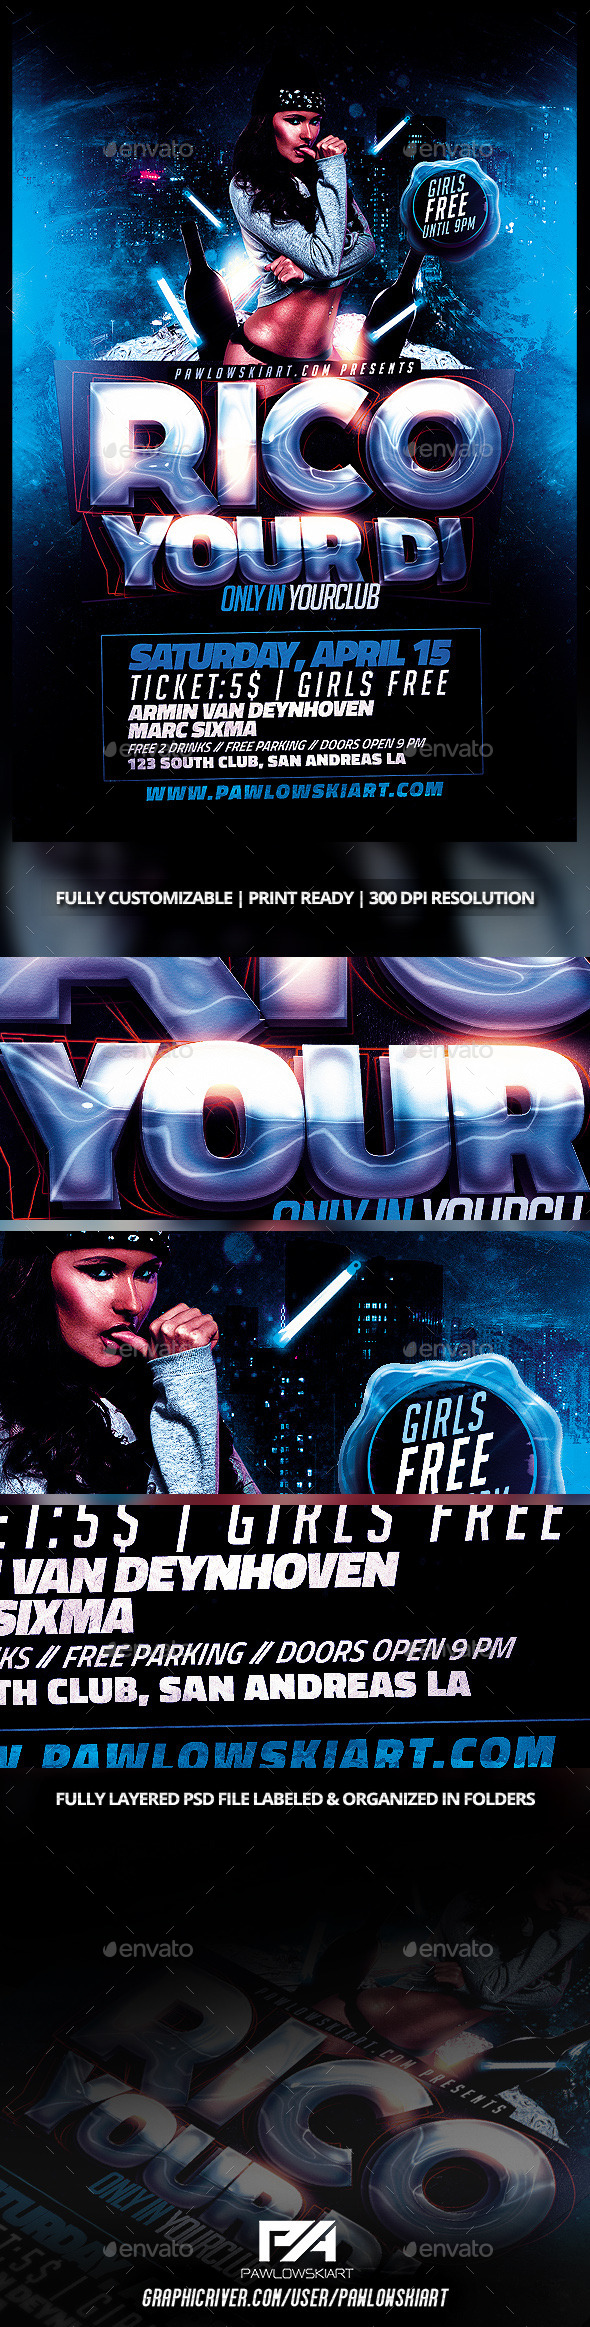 GraphicRiver Electro House DJ Flyer Template 10448680